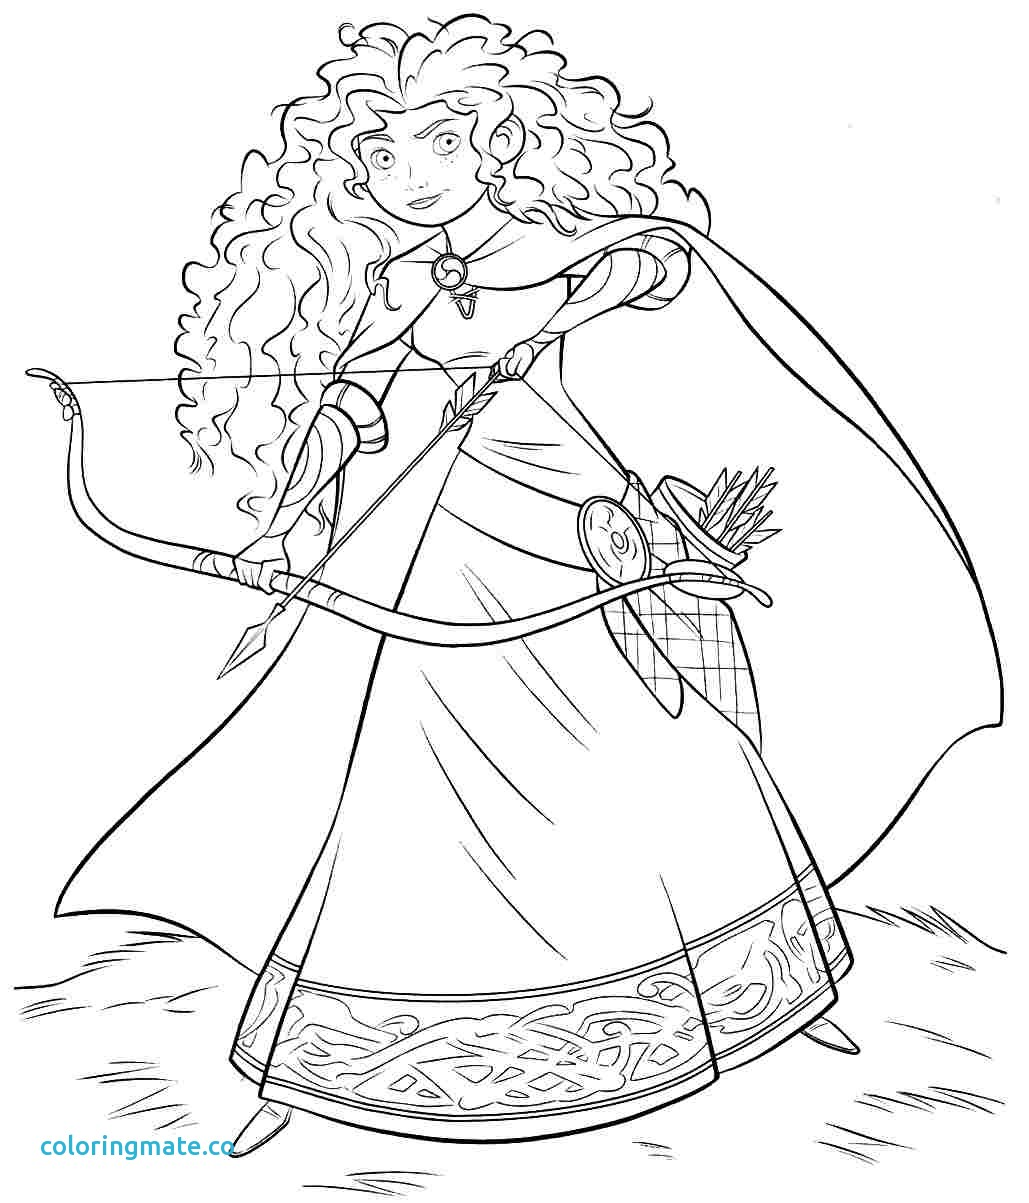 1029x1203 Brave Coloring Pages Lovely Disney Pixar Brave Coloring Pages